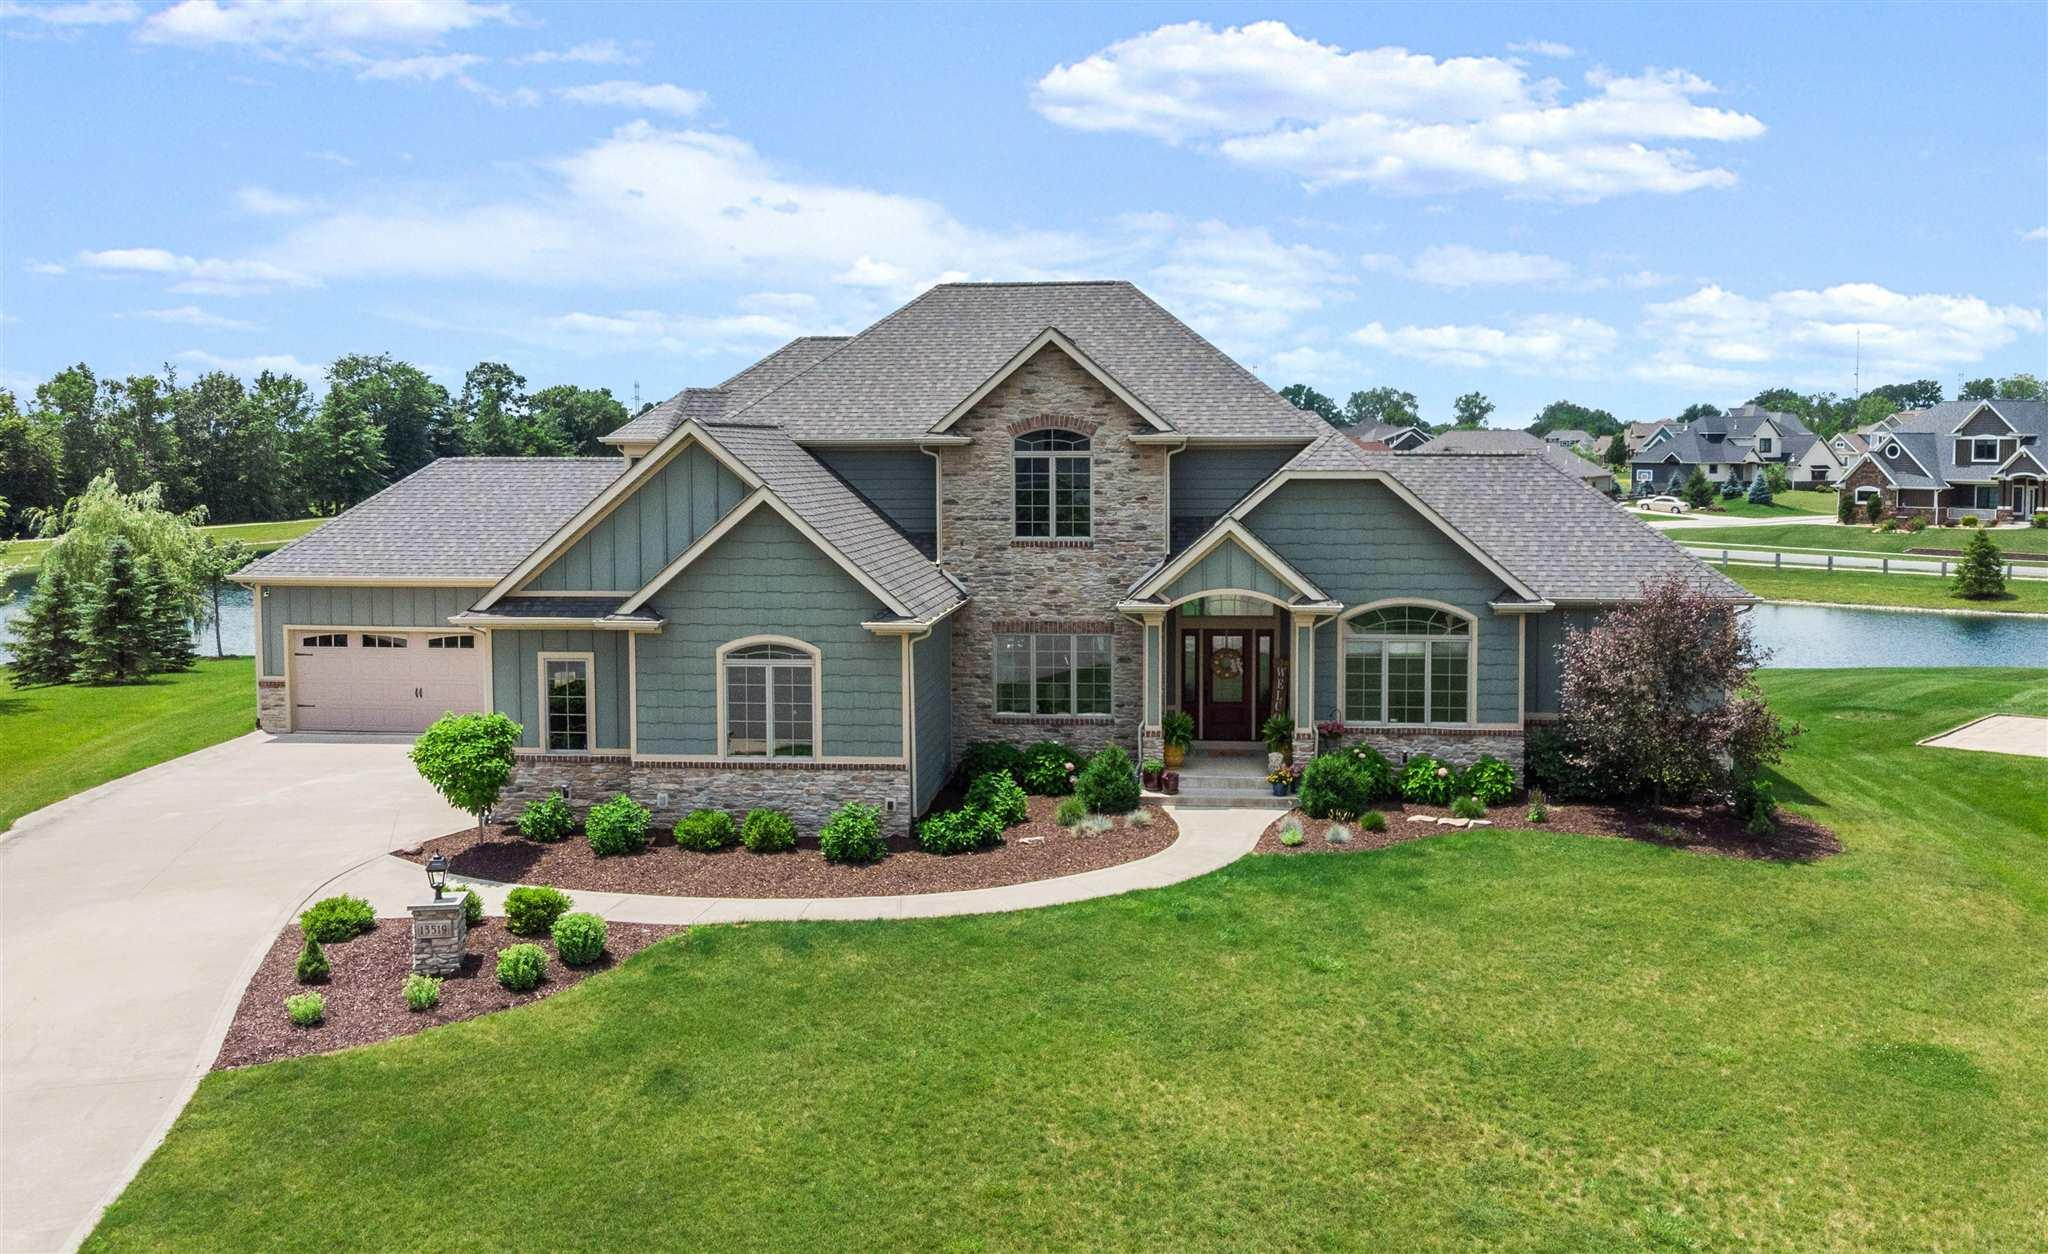 This gorgeous home in the highly sought-after Hawthorne Park Estates exudes casual elegance! From the minute you pull into the driveway, this 5 BR/4.5 BA home on a cul-de-sac pond lot will take your breath away! Step through the front door as a guest or the quaint side door as family. Inside you will find 20' ceilings and a wall of windows overlooking picturesque water views all along the back of the home. Make your way into the huge, gourmet kitchen and casual dining area which flows wonderfully to the cozy hearth room with cathedral ceilings and a fireplace flanked by built-in bookshelves. The home is designed with a split (2&2) garage plan entering the hallway off the kitchen with utility room, mud room and half bath. The master en suite has a gorgeous shiplap wall, trey ceiling, jetted tub, and large walk-in tile shower. Step upstairs to 3 nicely sized bedrooms, two of which share a Jack & Jill bath while one offers a private bath. The lower level has the 5th bedroom, full bath, family room plumbed for a future bar and flex space. The home sets itself apart with gorgeous, engineered flooring, mixed white & stained custom woodwork, custom ceilings, granite counters, tons of storage and so much more! Additional amenities include an irrigation system, security system, dual furnace & AC units, Ring doorbell & more. All this in the NWAC award winning schools close to I69, hospitals & shopping.